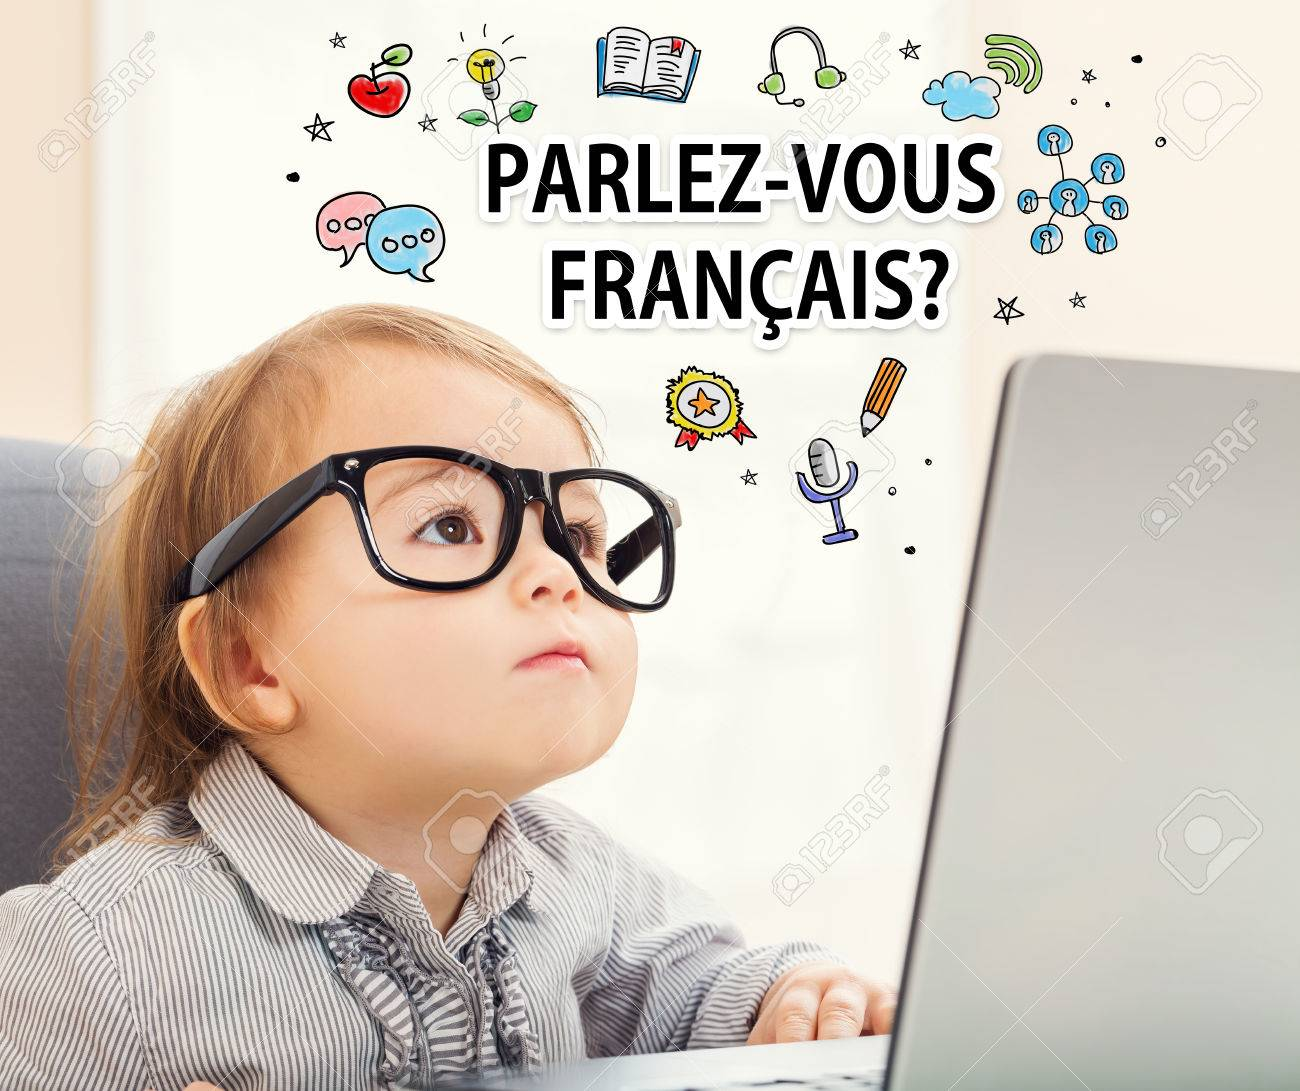 Parlez vous Francais (Do you speak French) texts with toddler girl using her laptop Standard-Bild - 59198824